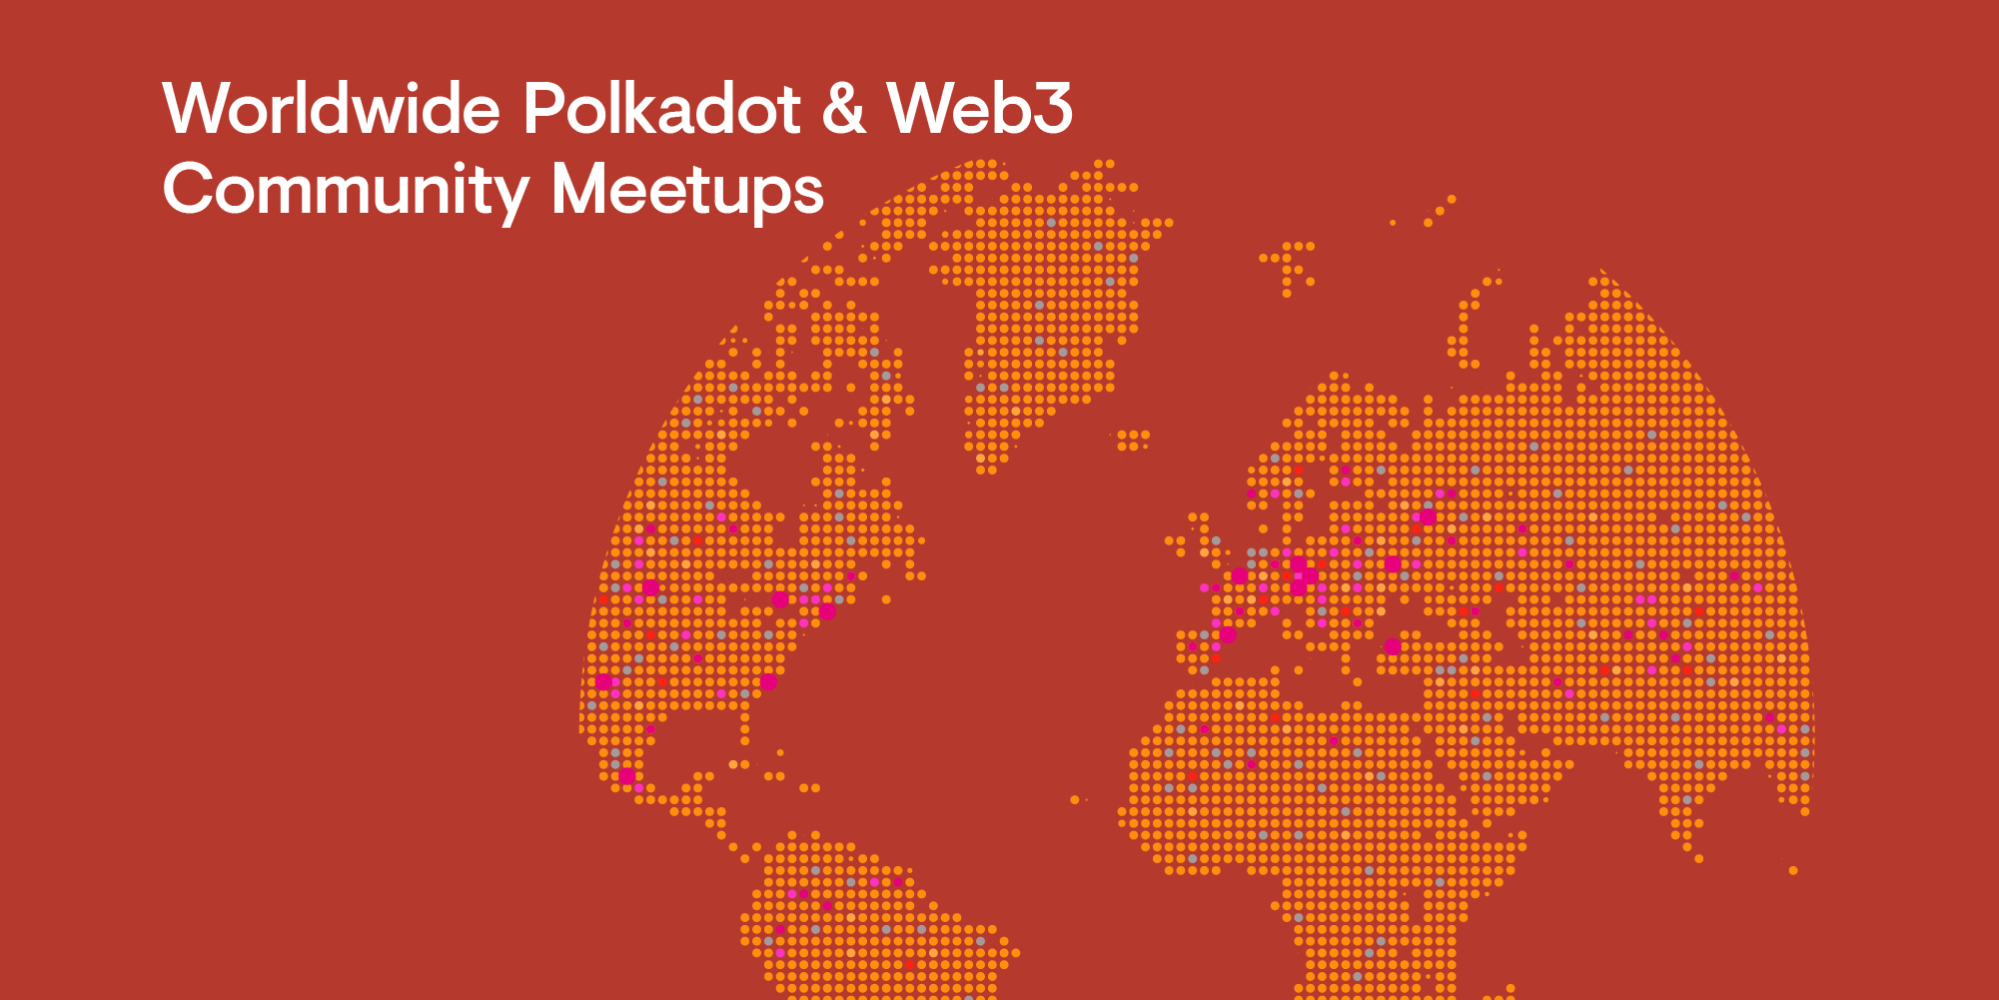 Launching Worldwide Polkadot & Web3 Community Meetups